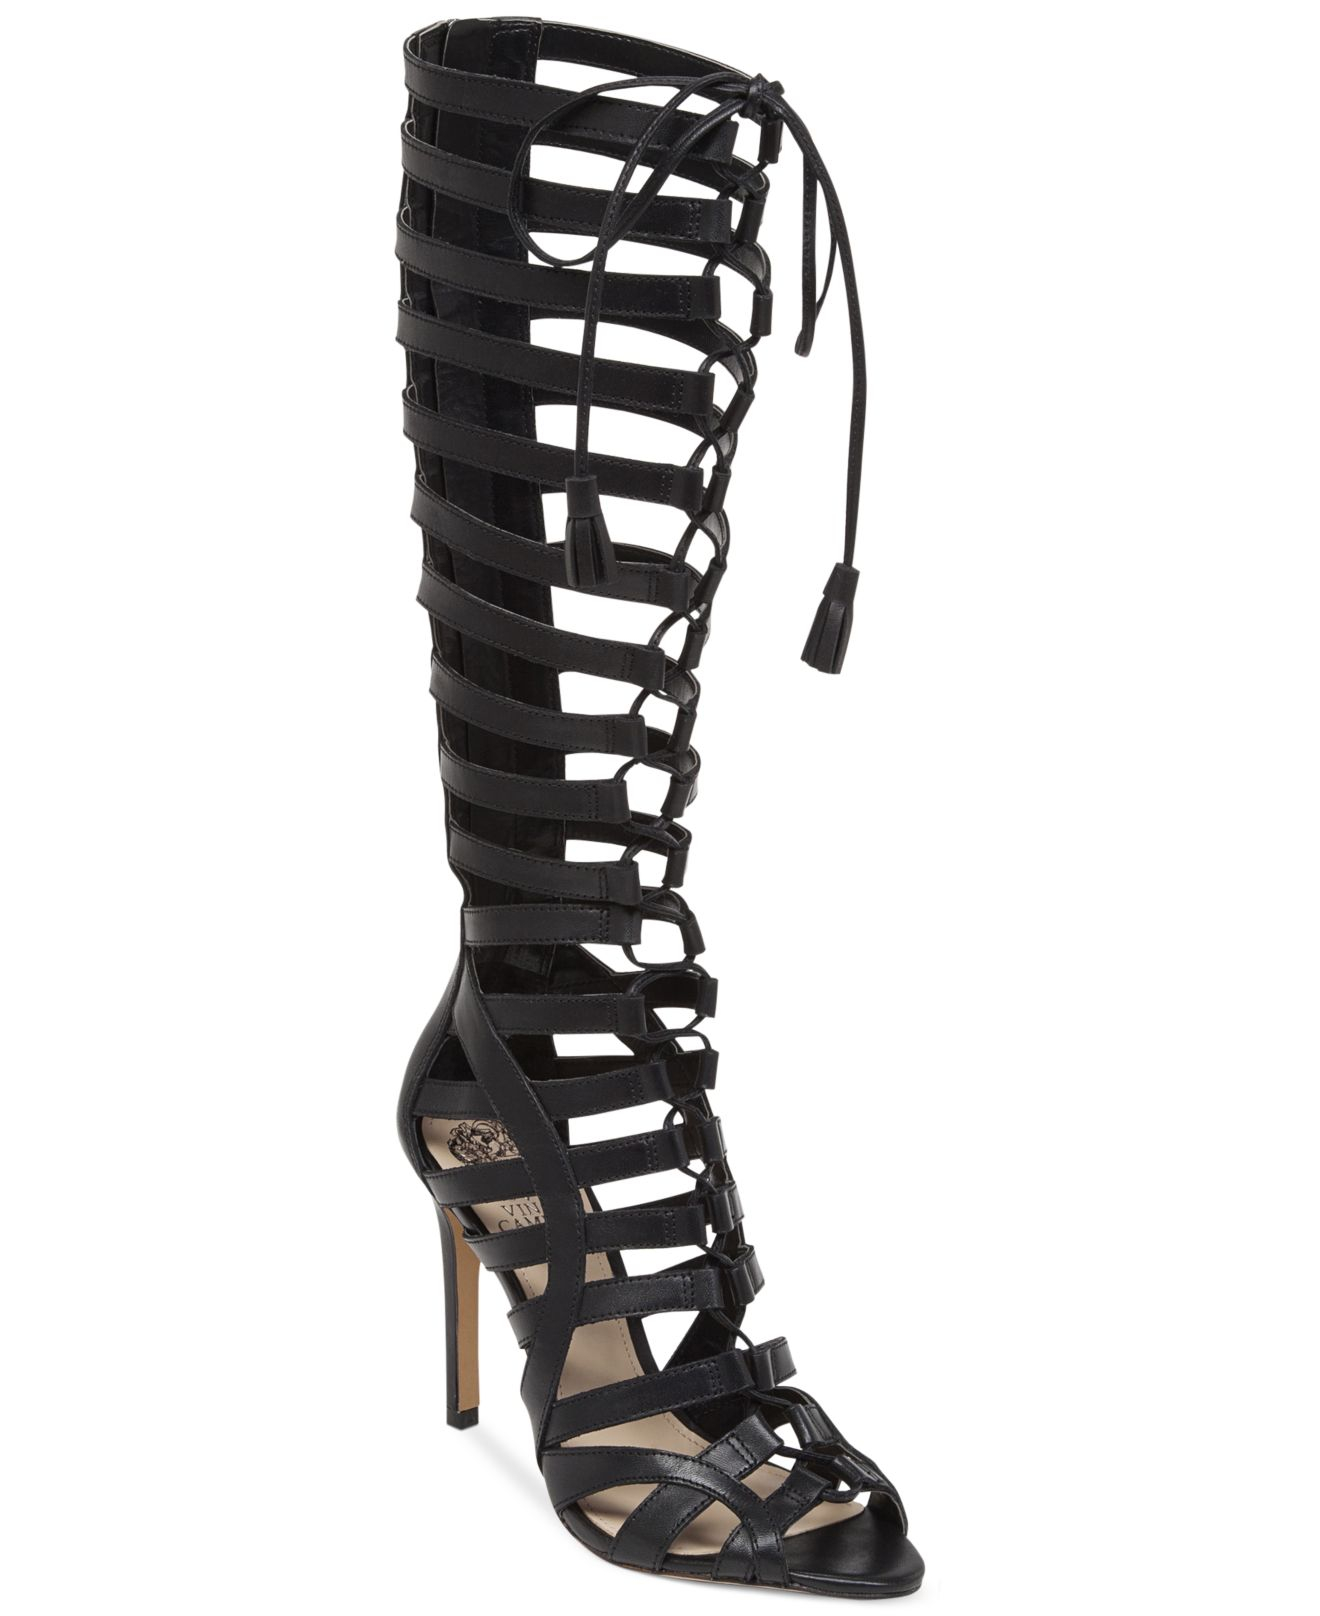 98181fe2057e Lyst - Vince Camuto Olivian Tall Lace-Up Gladiator Sandals in Black